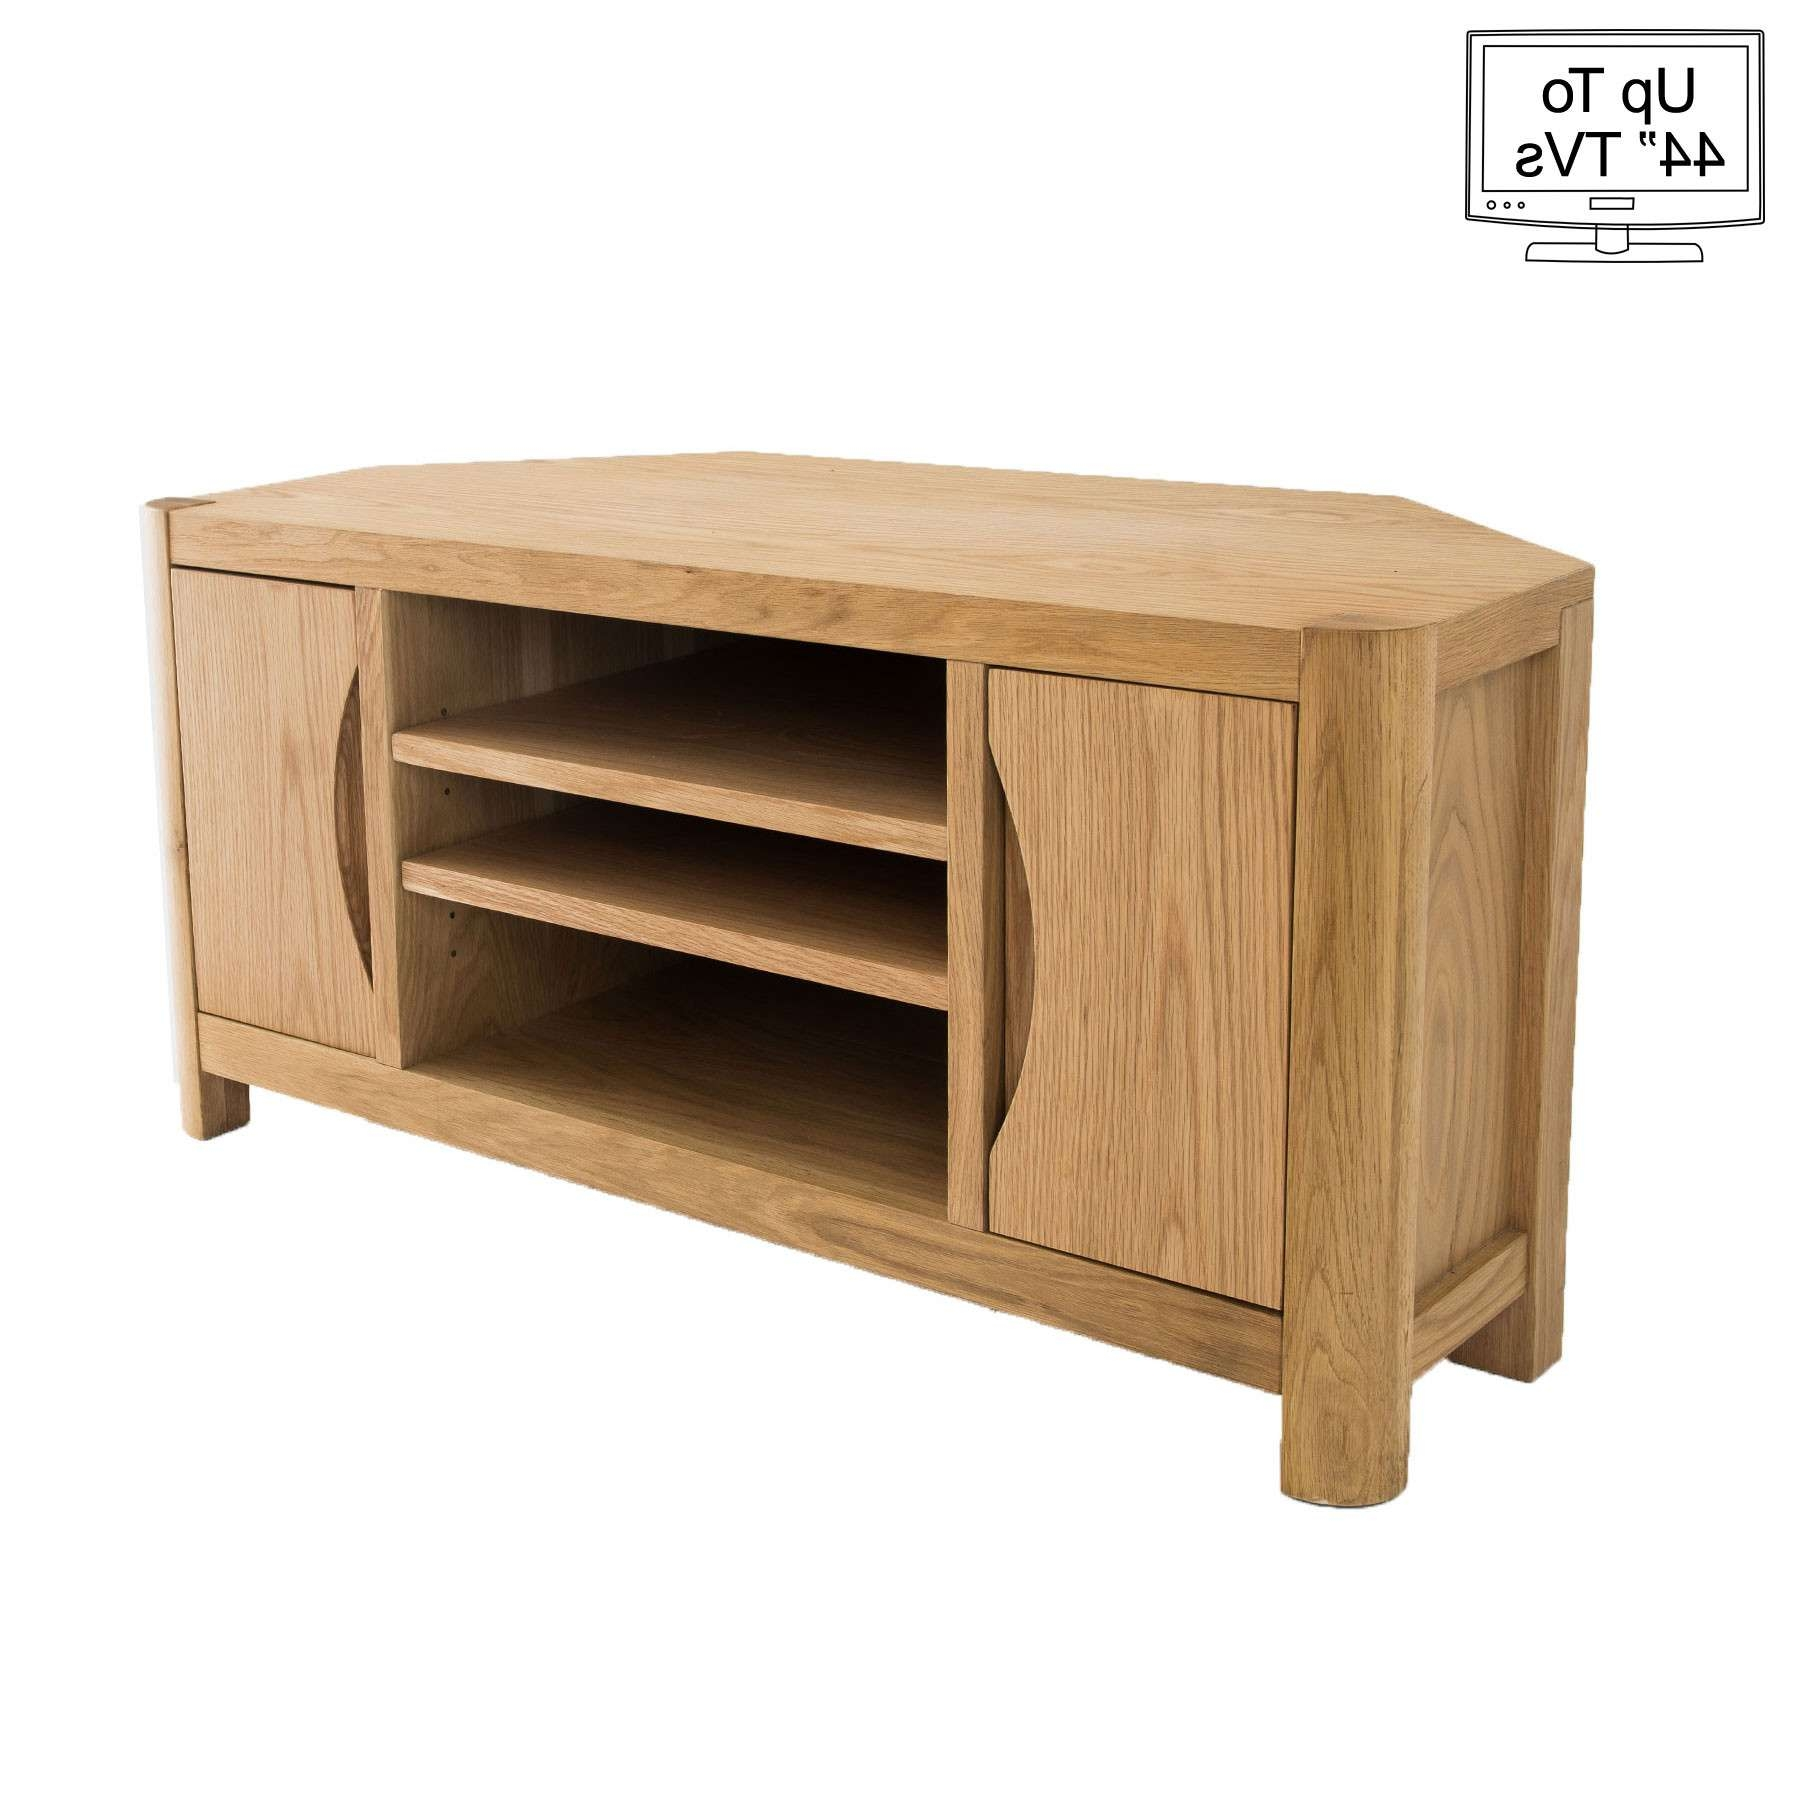 "Light Oak Corner Tv Stand For Up To 44"" Tvs Regarding Oak Corner Tv Stands (View 6 of 15)"